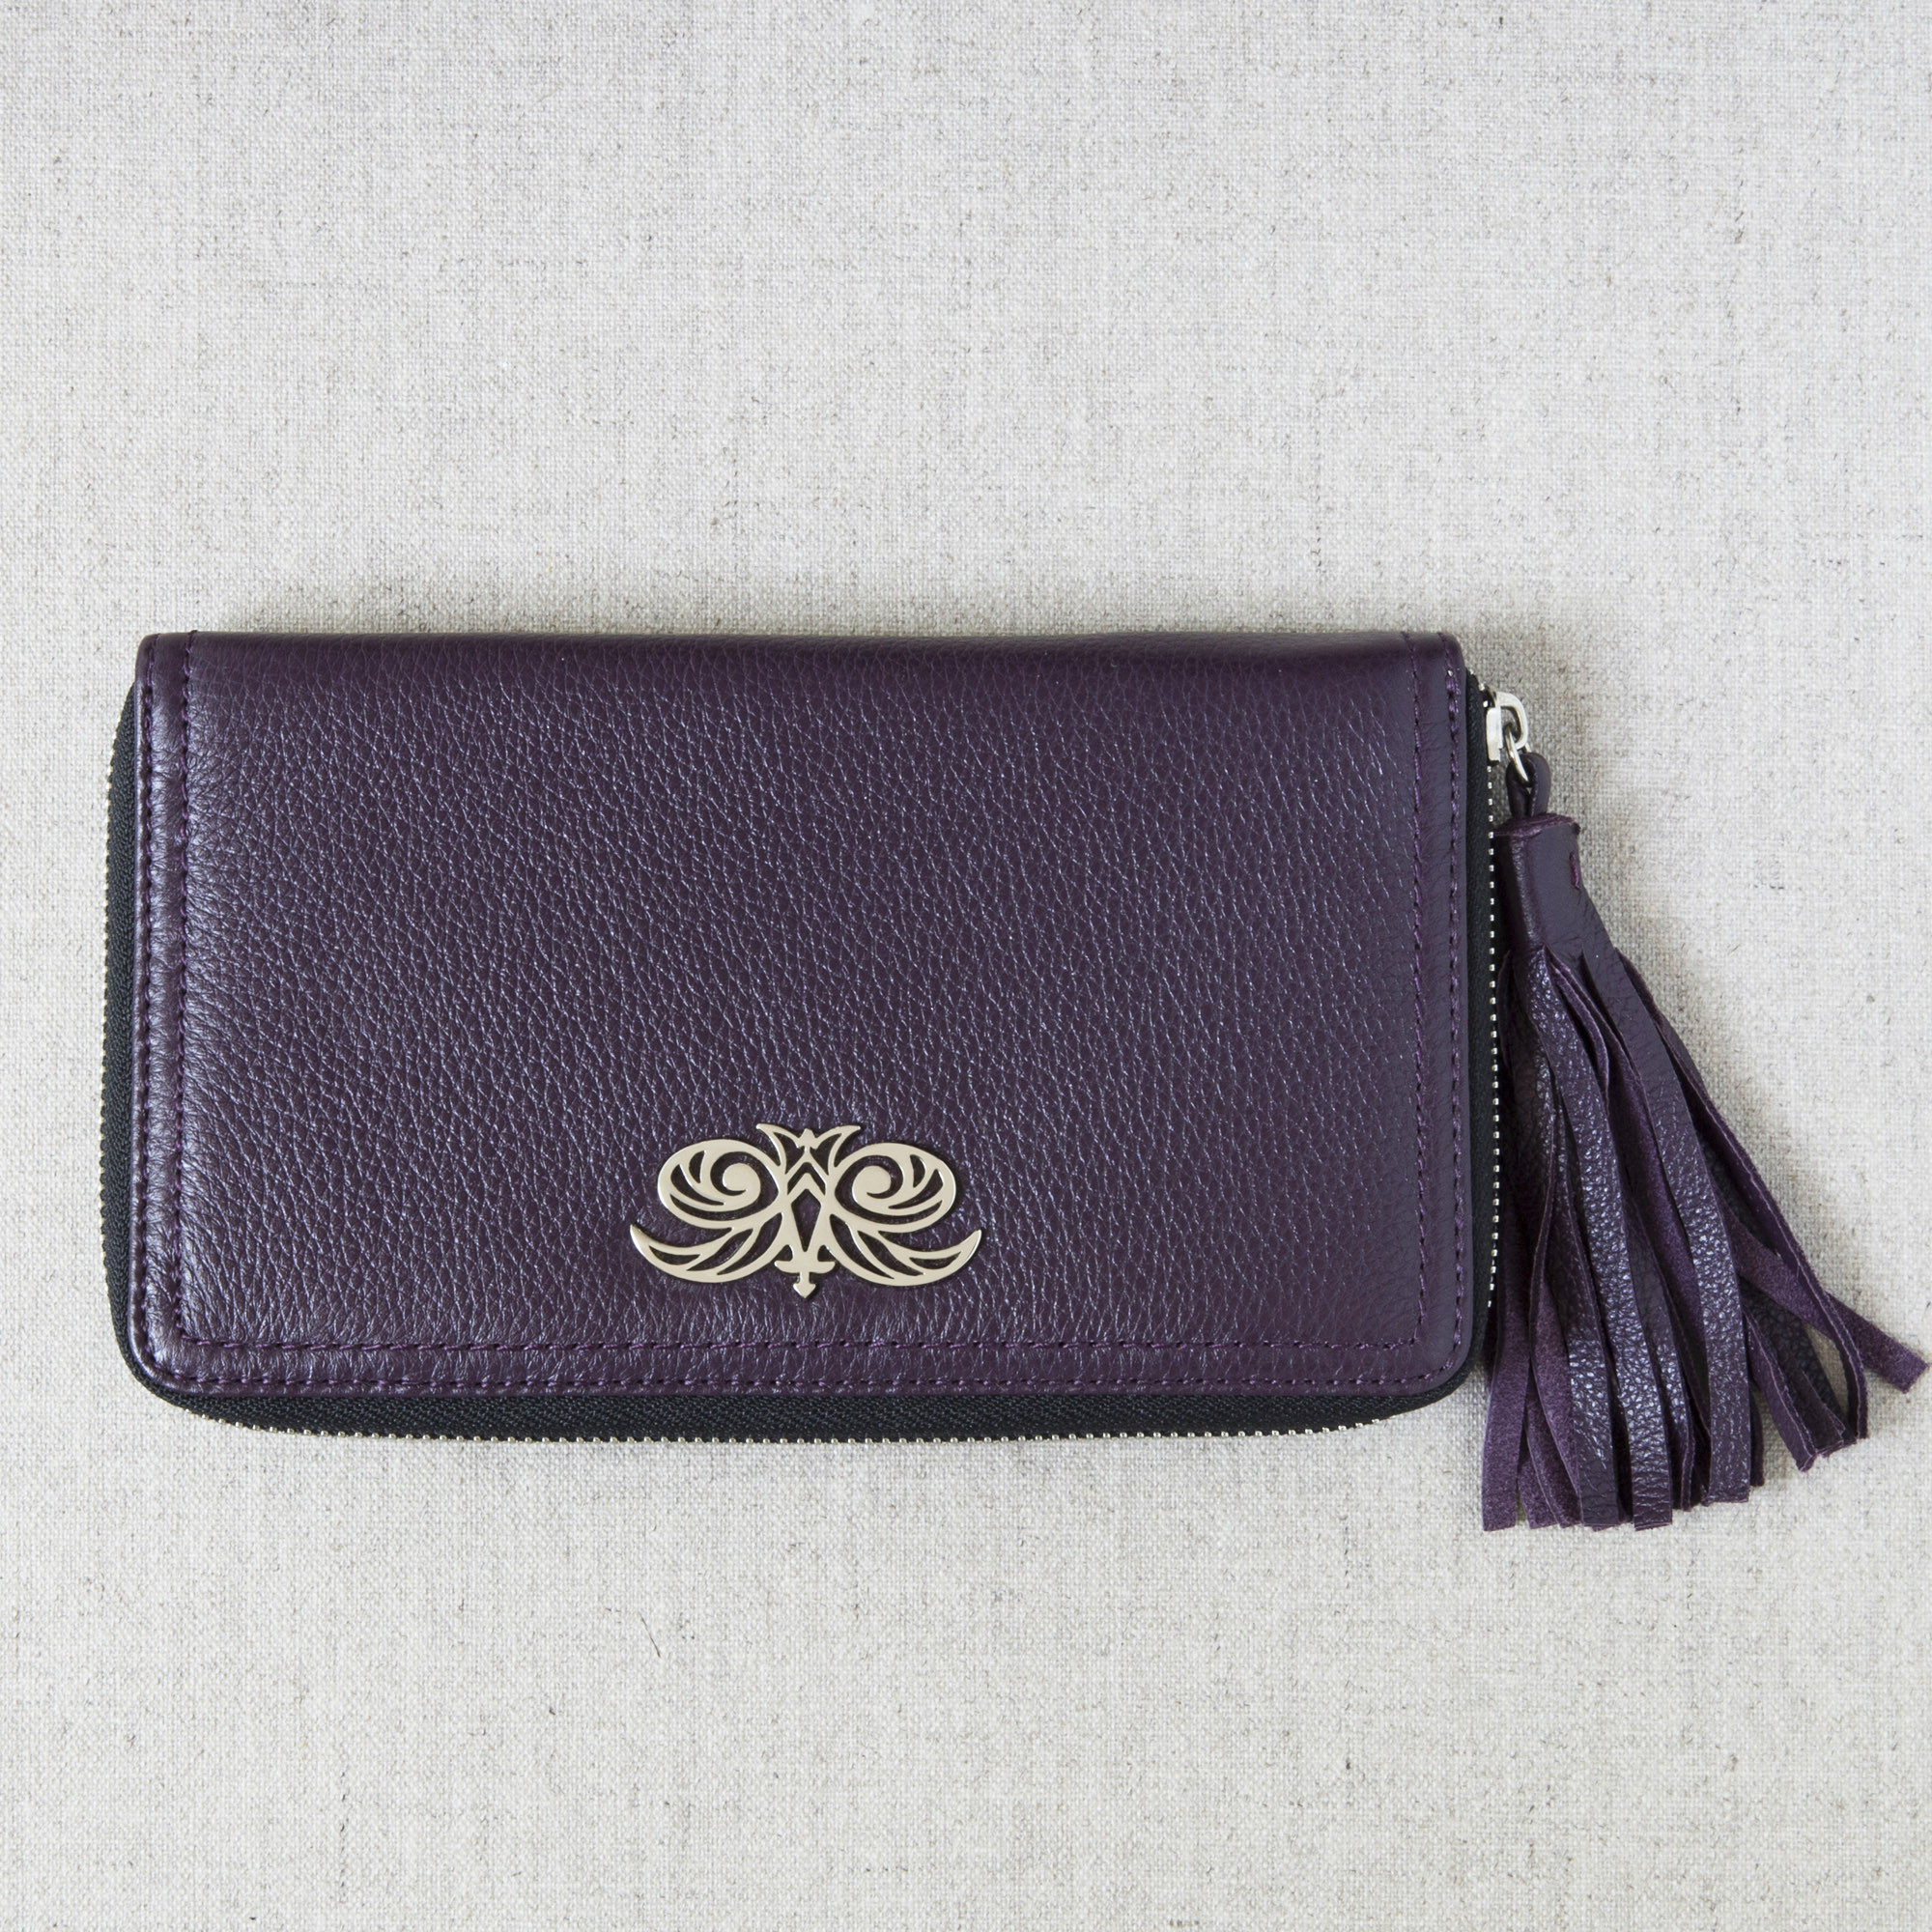 """Zipper organizer """"LISE"""" in grained calfskin purple color and leather tassel - front view on linen"""